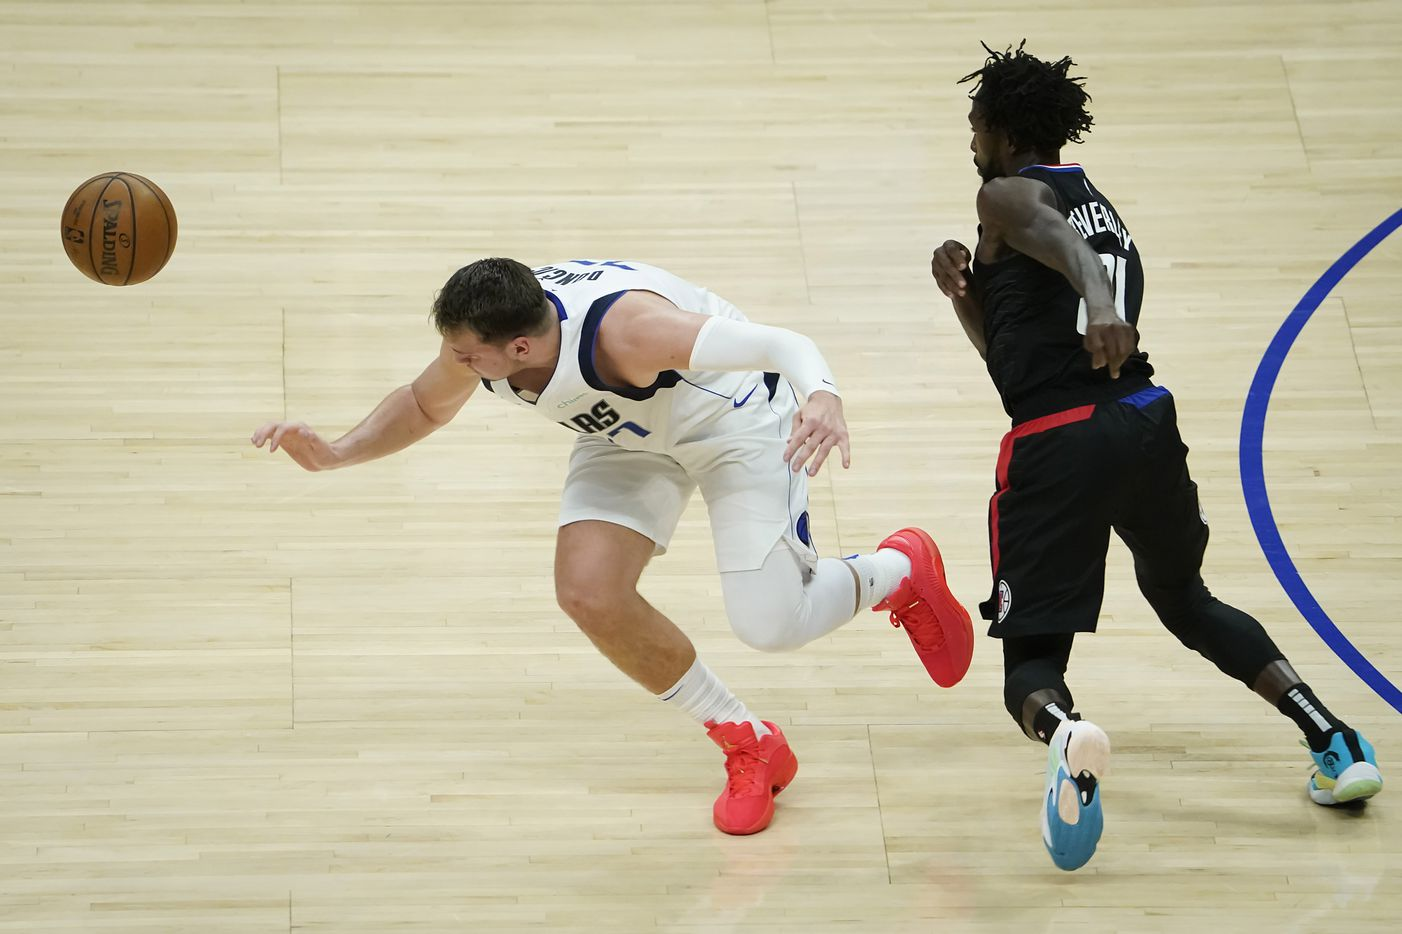 Dallas Mavericks guard Luka Doncic (77) has the ball stolen by LA Clippers guard Patrick Beverley (21) during the first half of an NBA playoff basketball game at Staples Center on Tuesday, May 25, 2021, in Los Angeles.